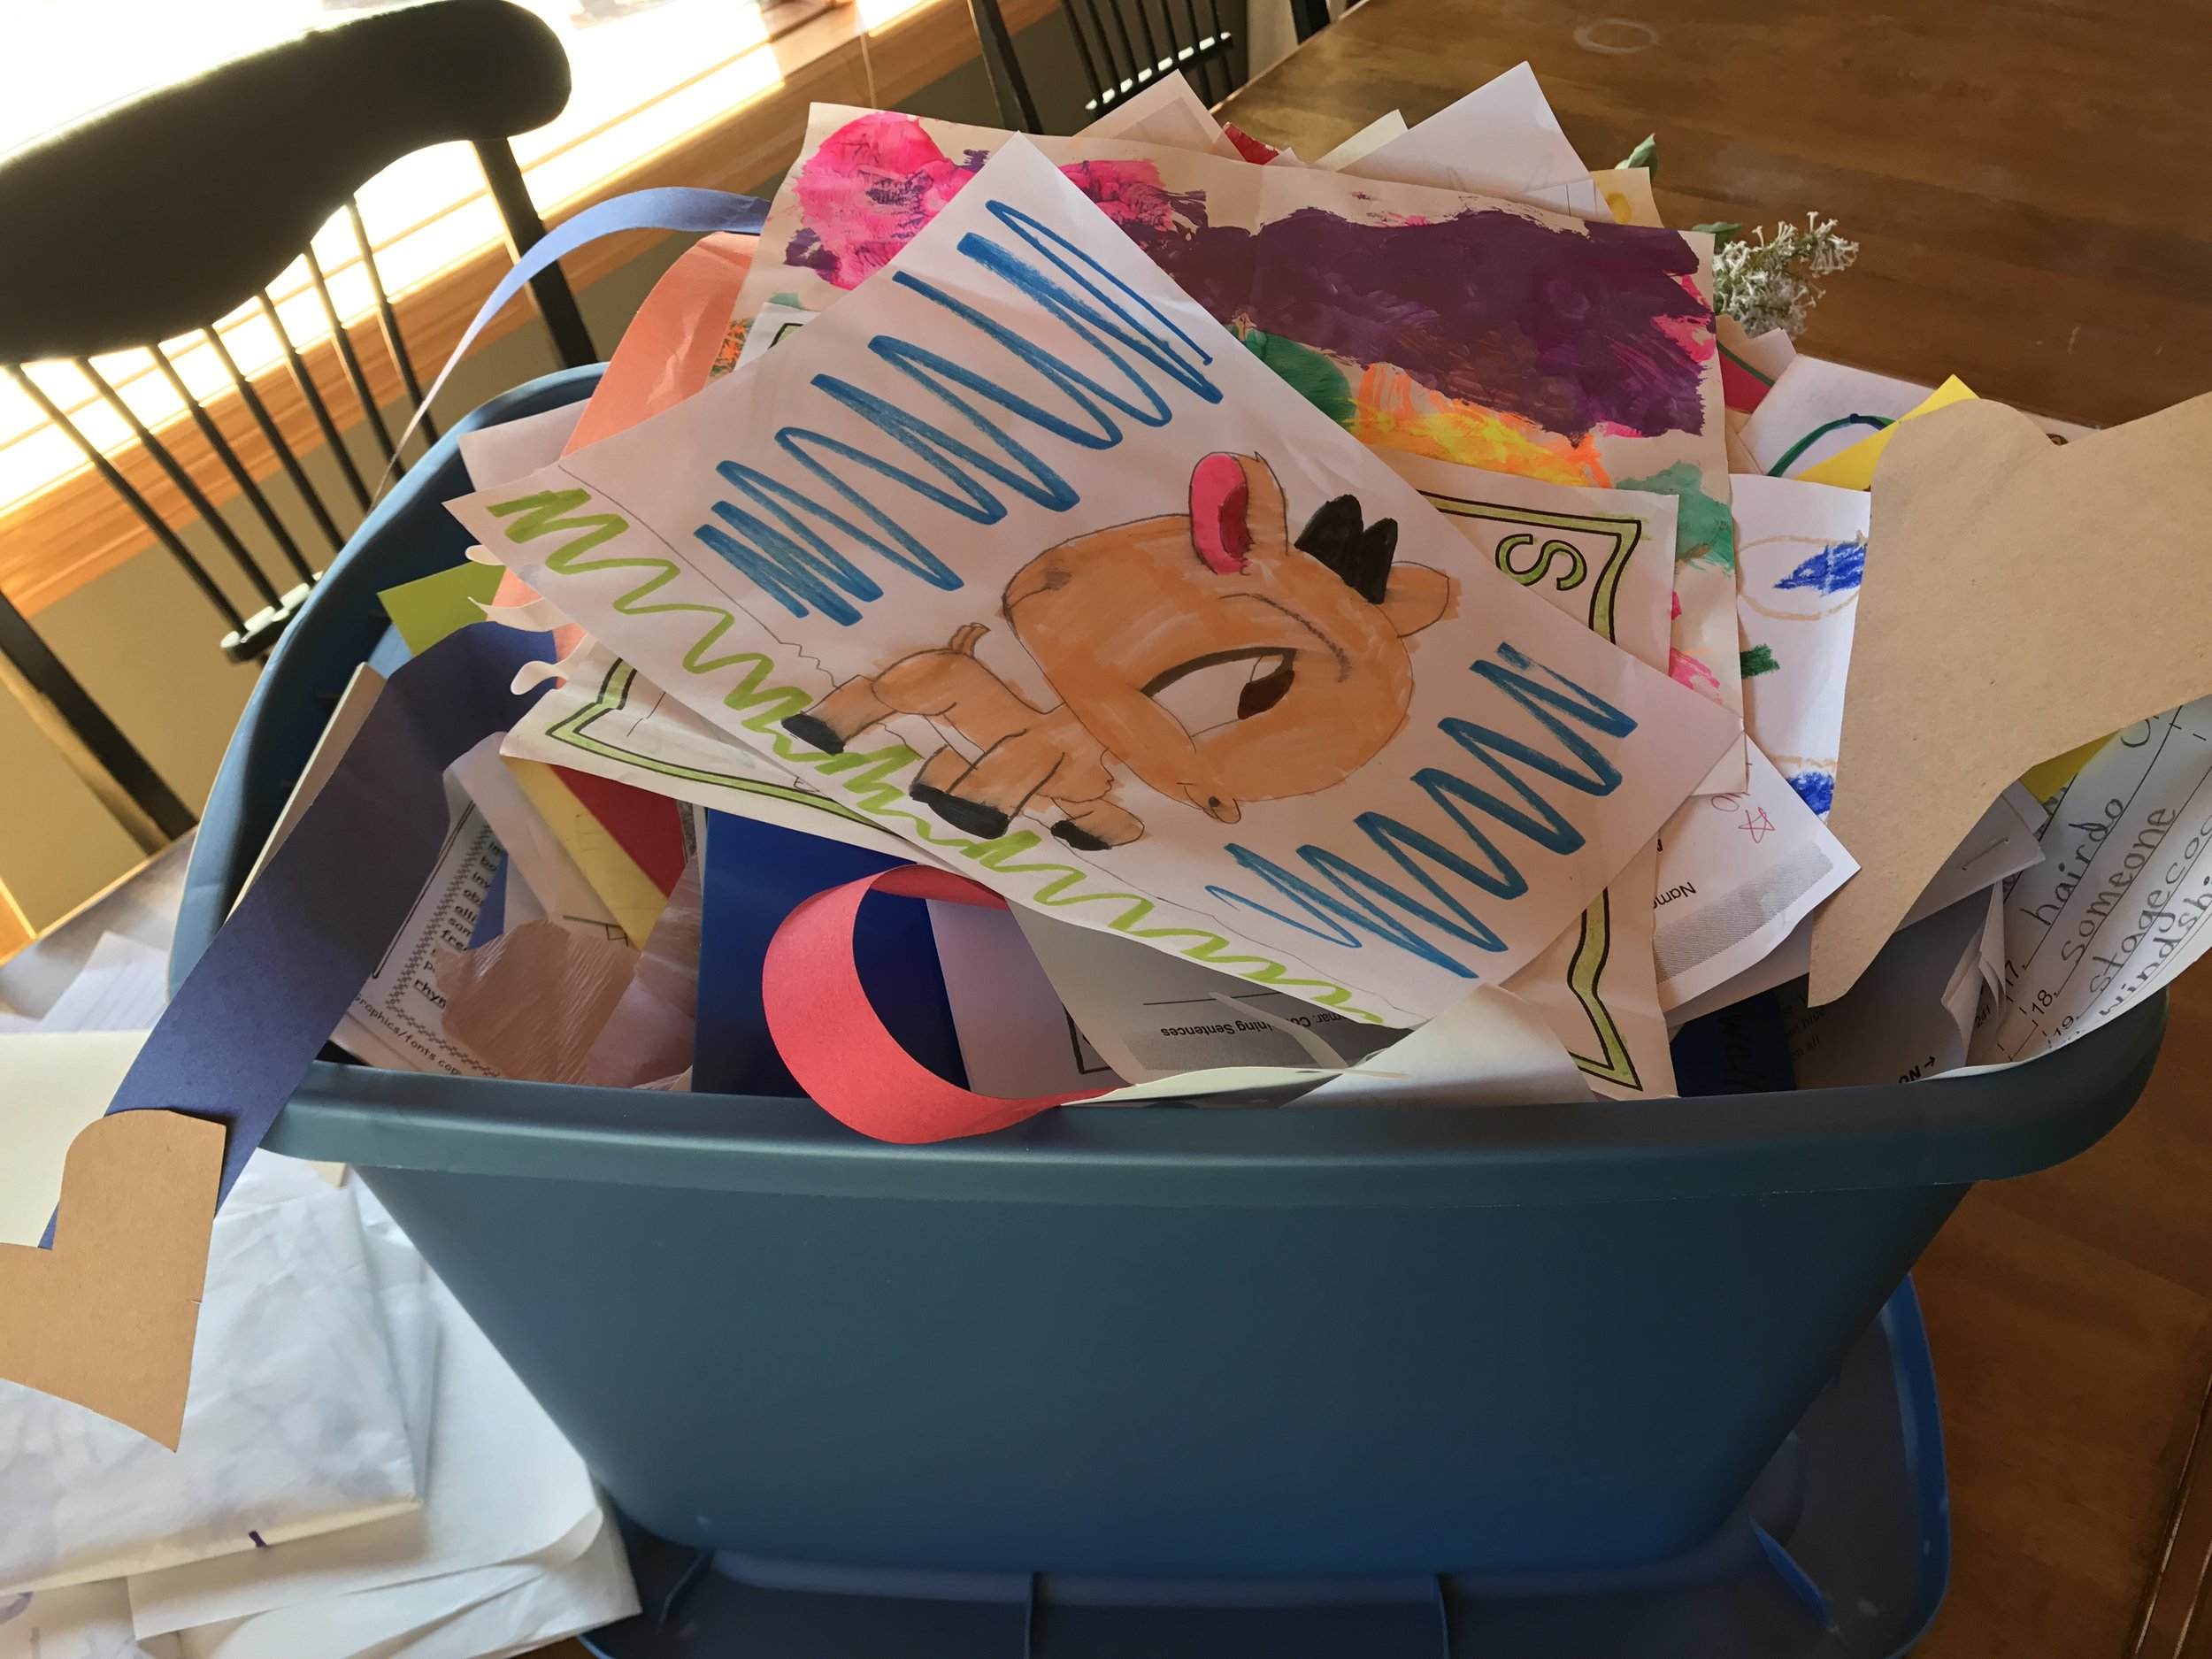 Collect school projects, artwork, and drawings in a bin throughout the year.